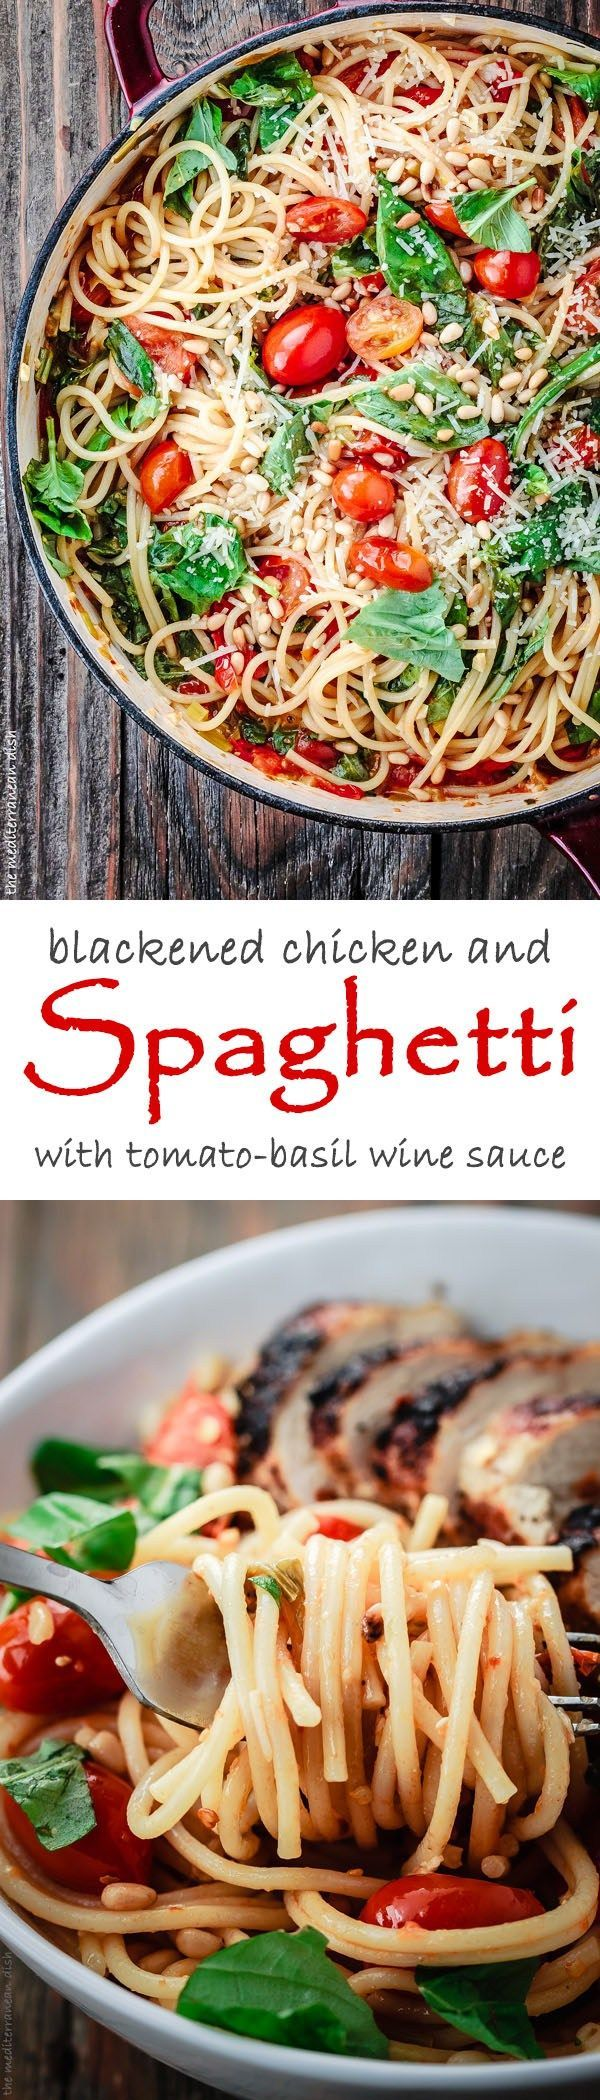 Blackened Chicken and Spaghetti Recipe with Tomato-Basil Wine Sauce. Try this perfect chicken and spaghetti dinner. Made with a light citrus wine sauce, fresh grape tomatoes and herbs. The perfect bite of comfort-by-carbs, but without the guilt! You will love this easy recipe.